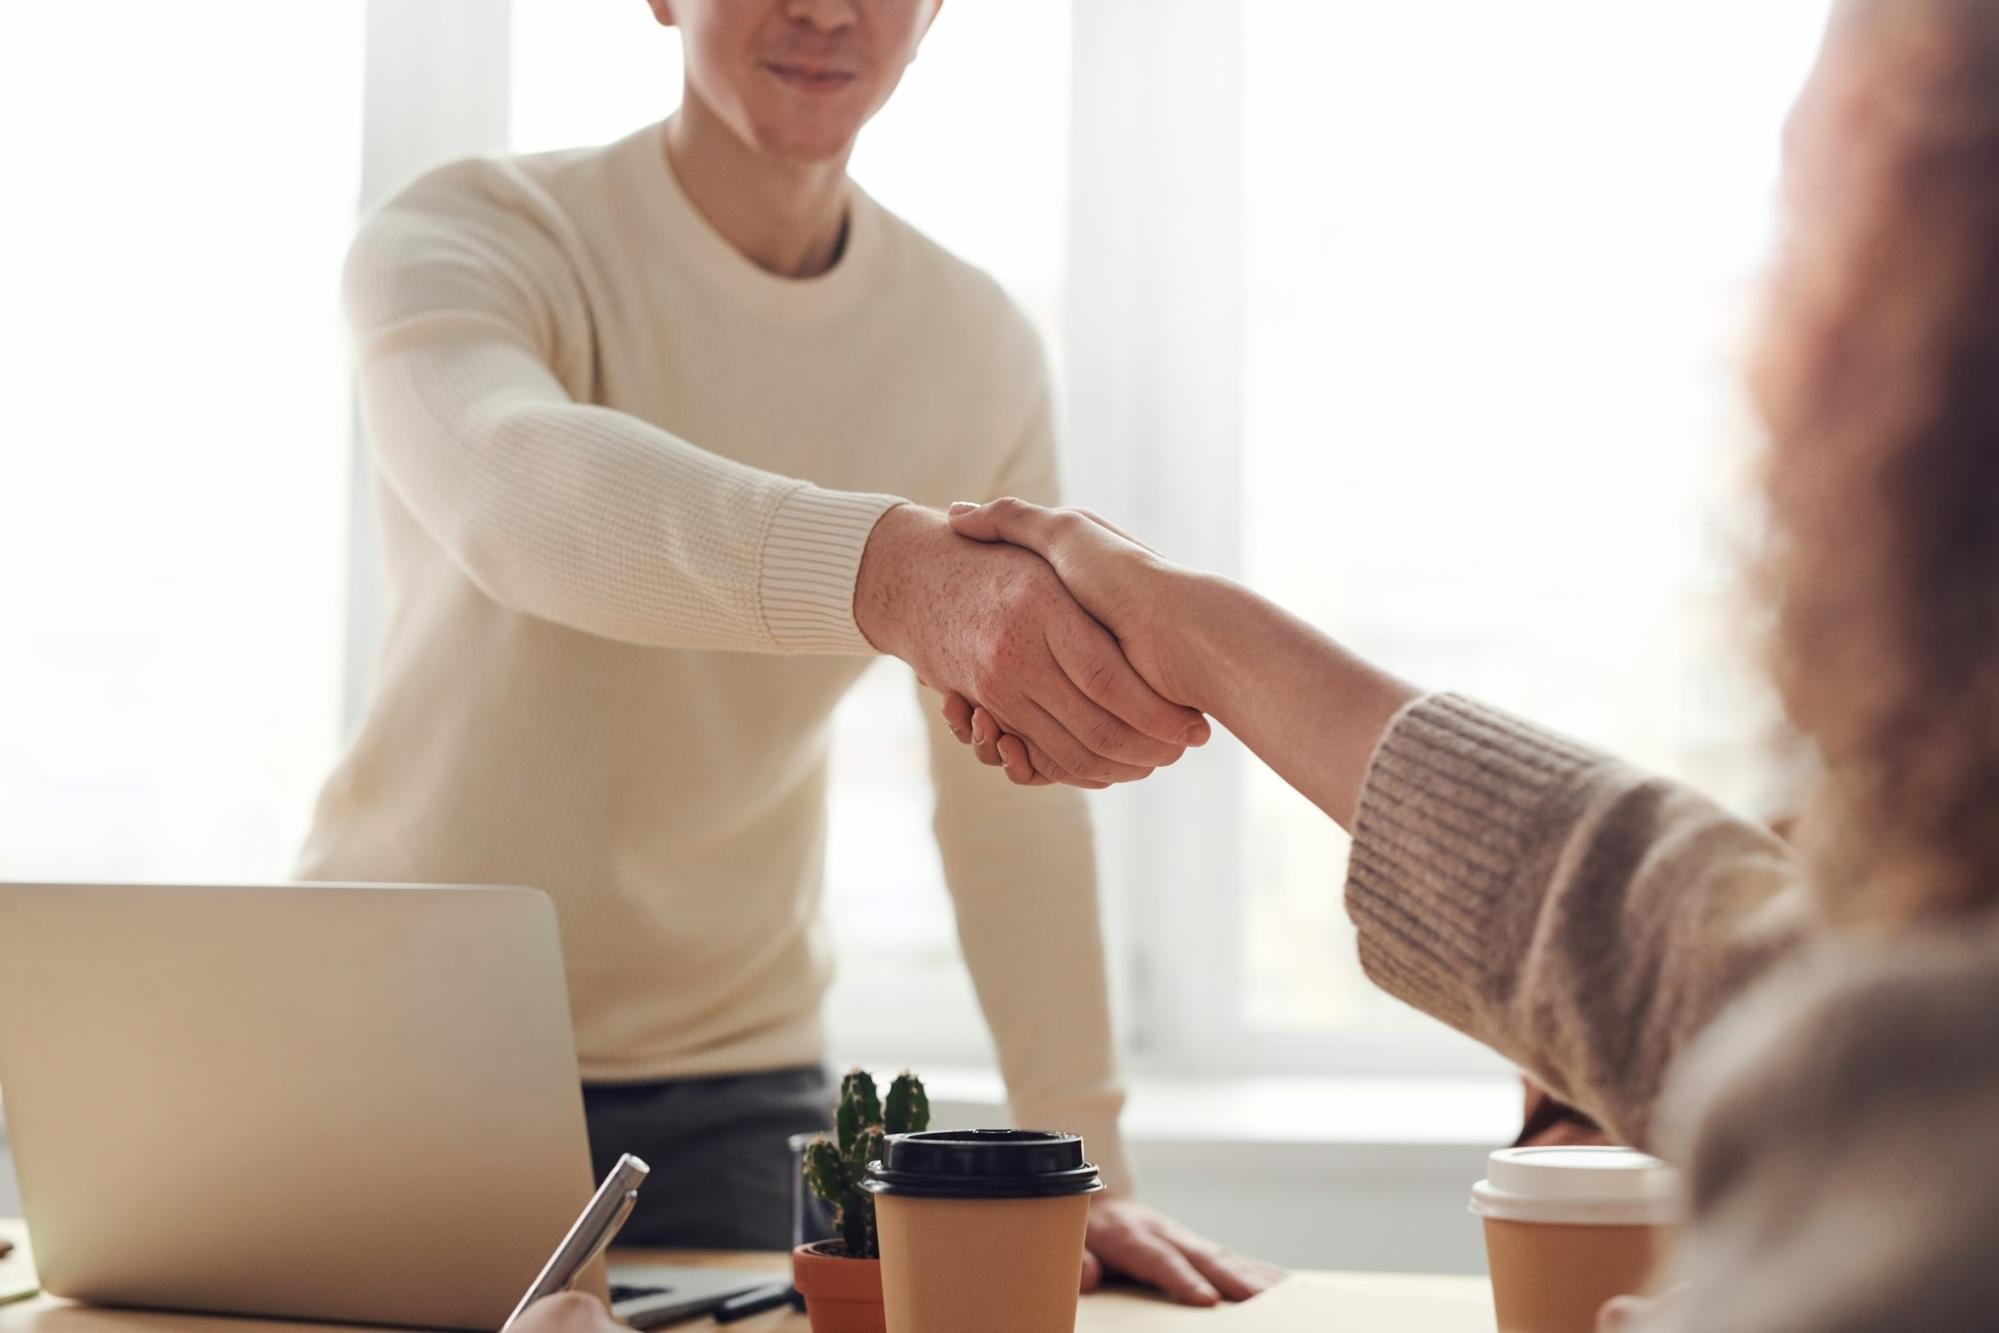 Man shaking hand of woman from across a desk.